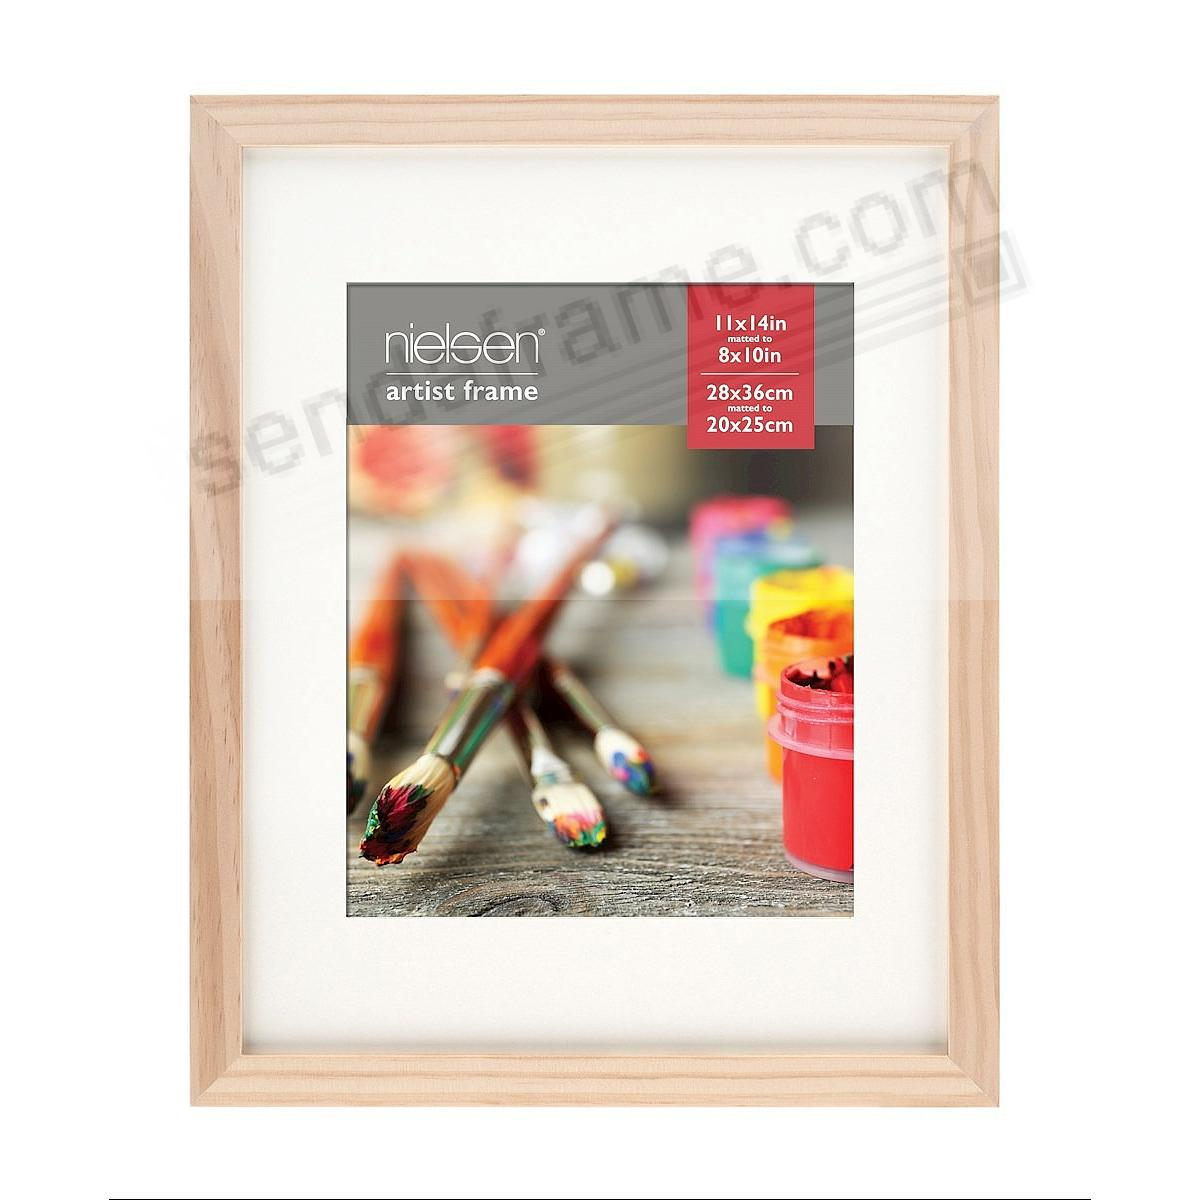 Ash Natural GALLERY-CANVAS DEPTH matted wood frame 11x14/8x10 by Nielsen-Bainbridge®